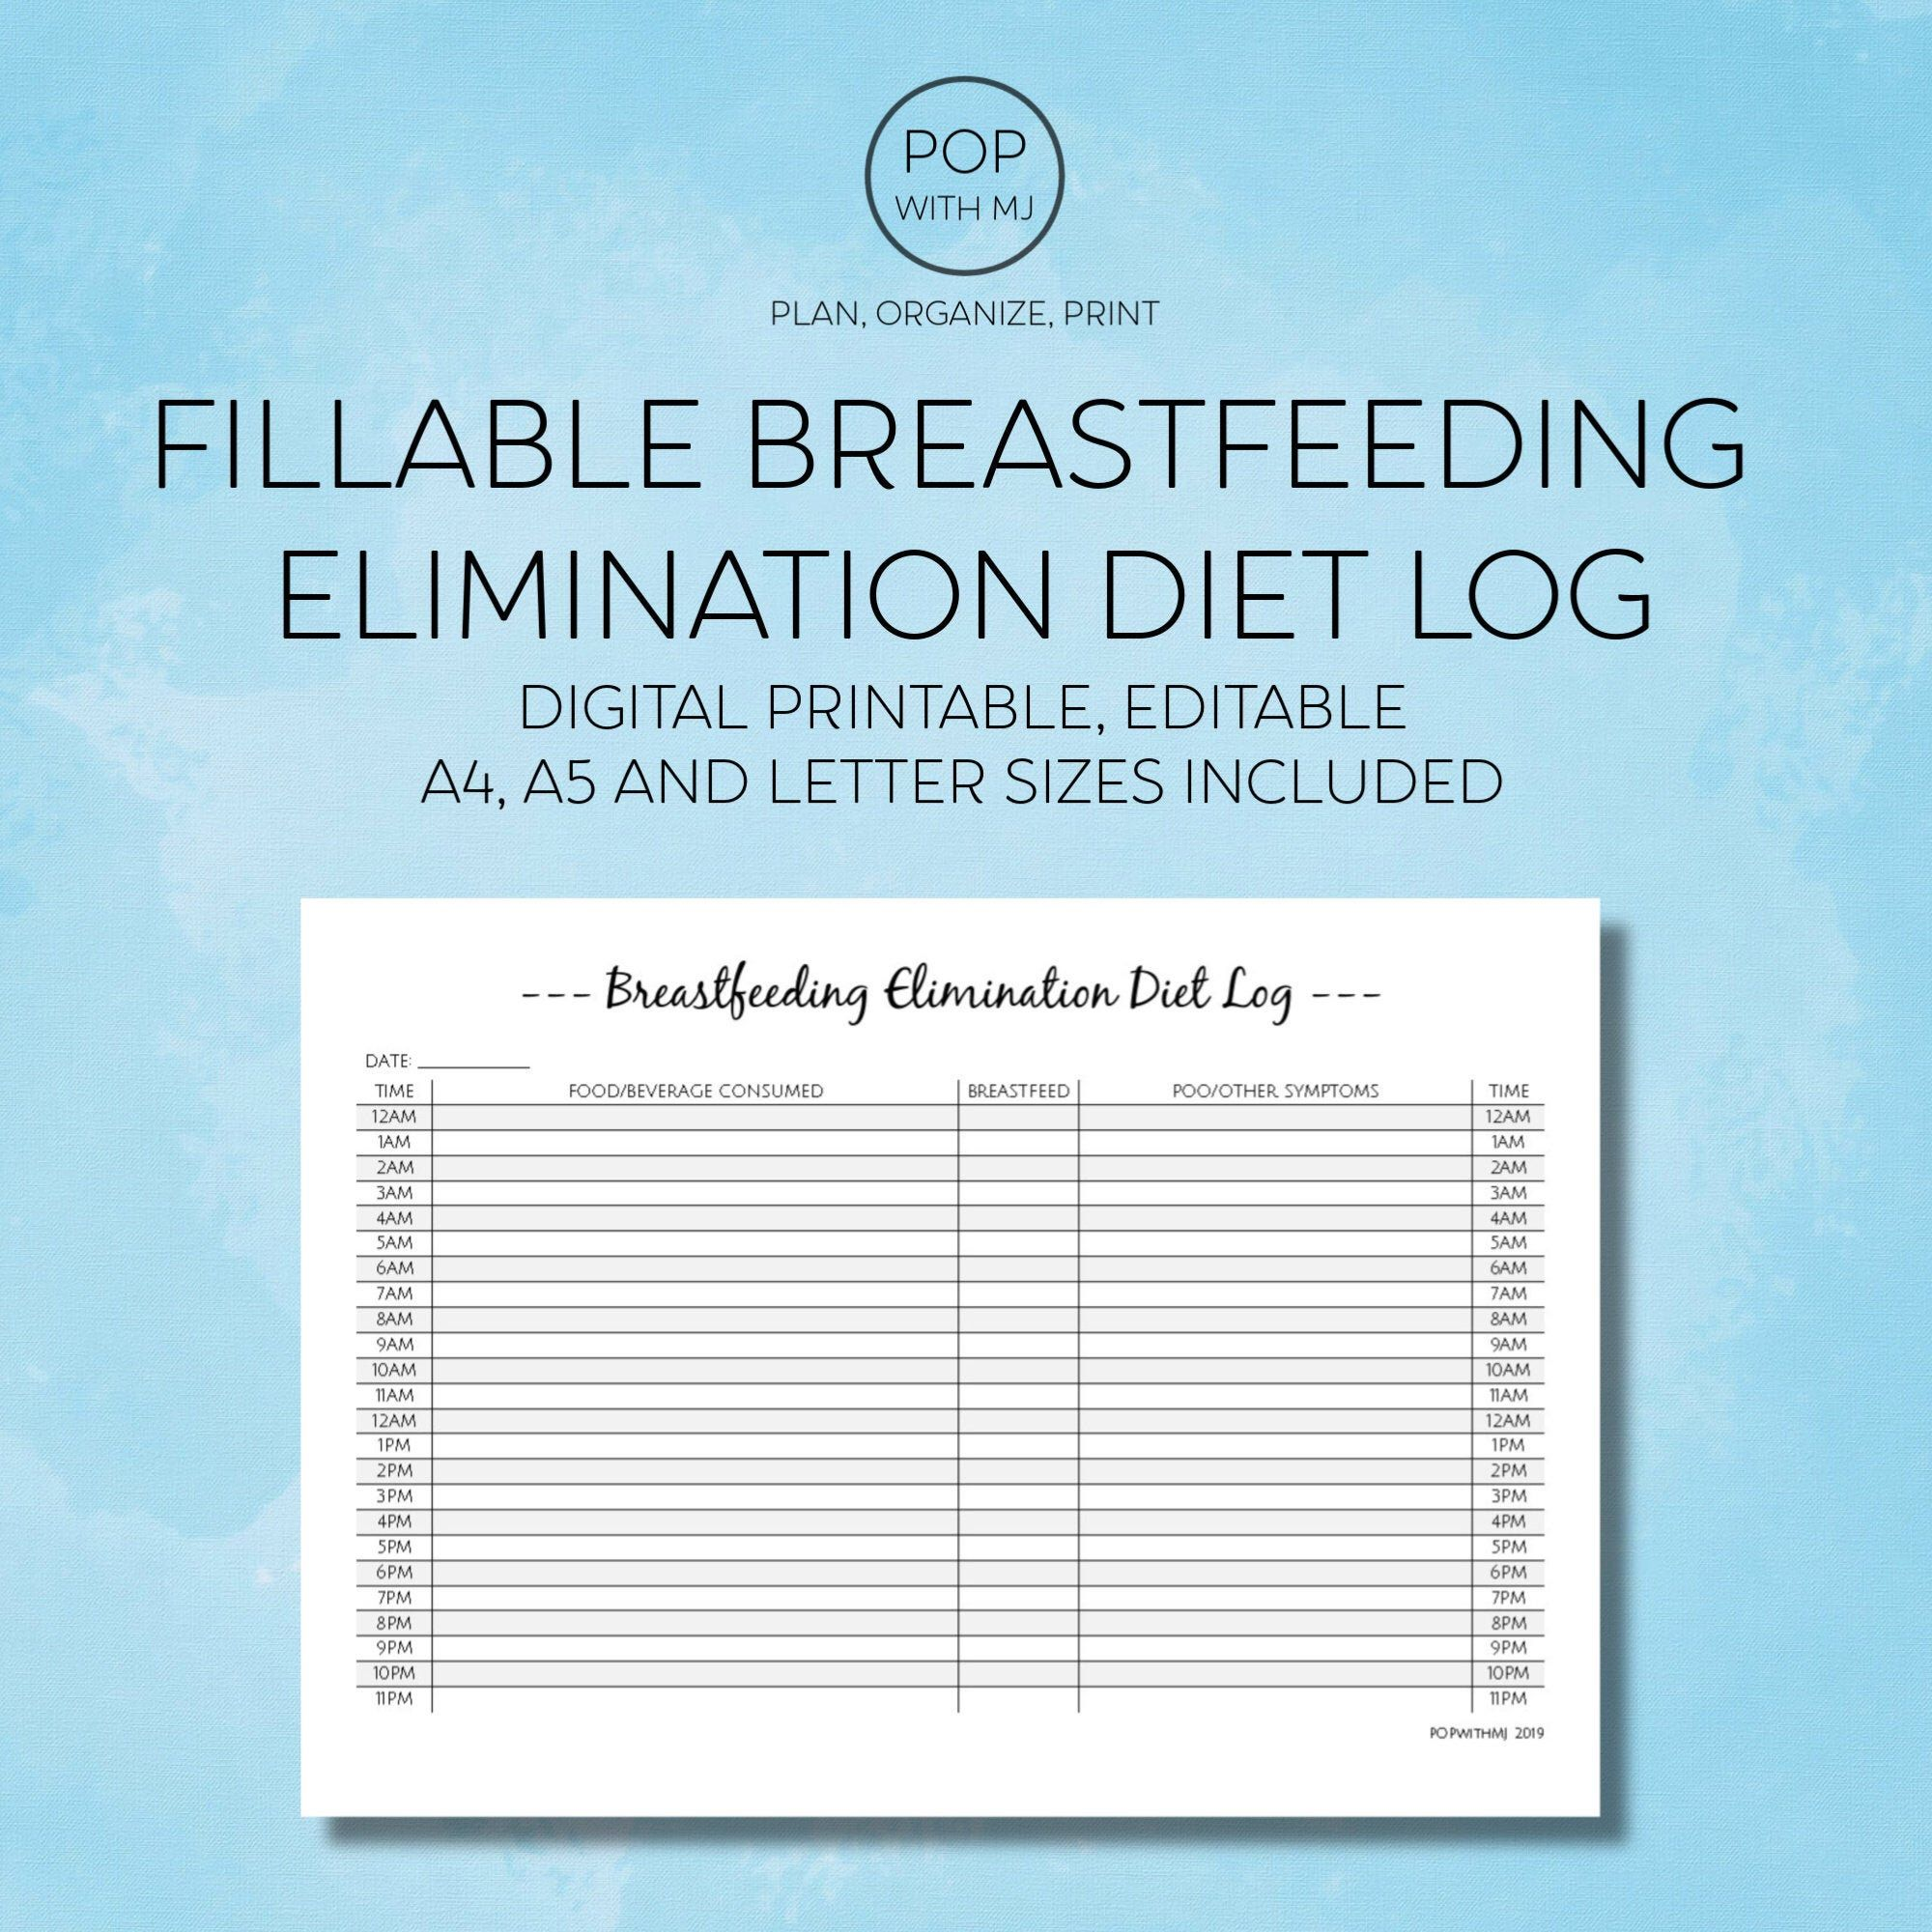 Fillable Breastfeeding Elimination Diet Log Editable Etsy Creating Planners Breastfeeding Lettering